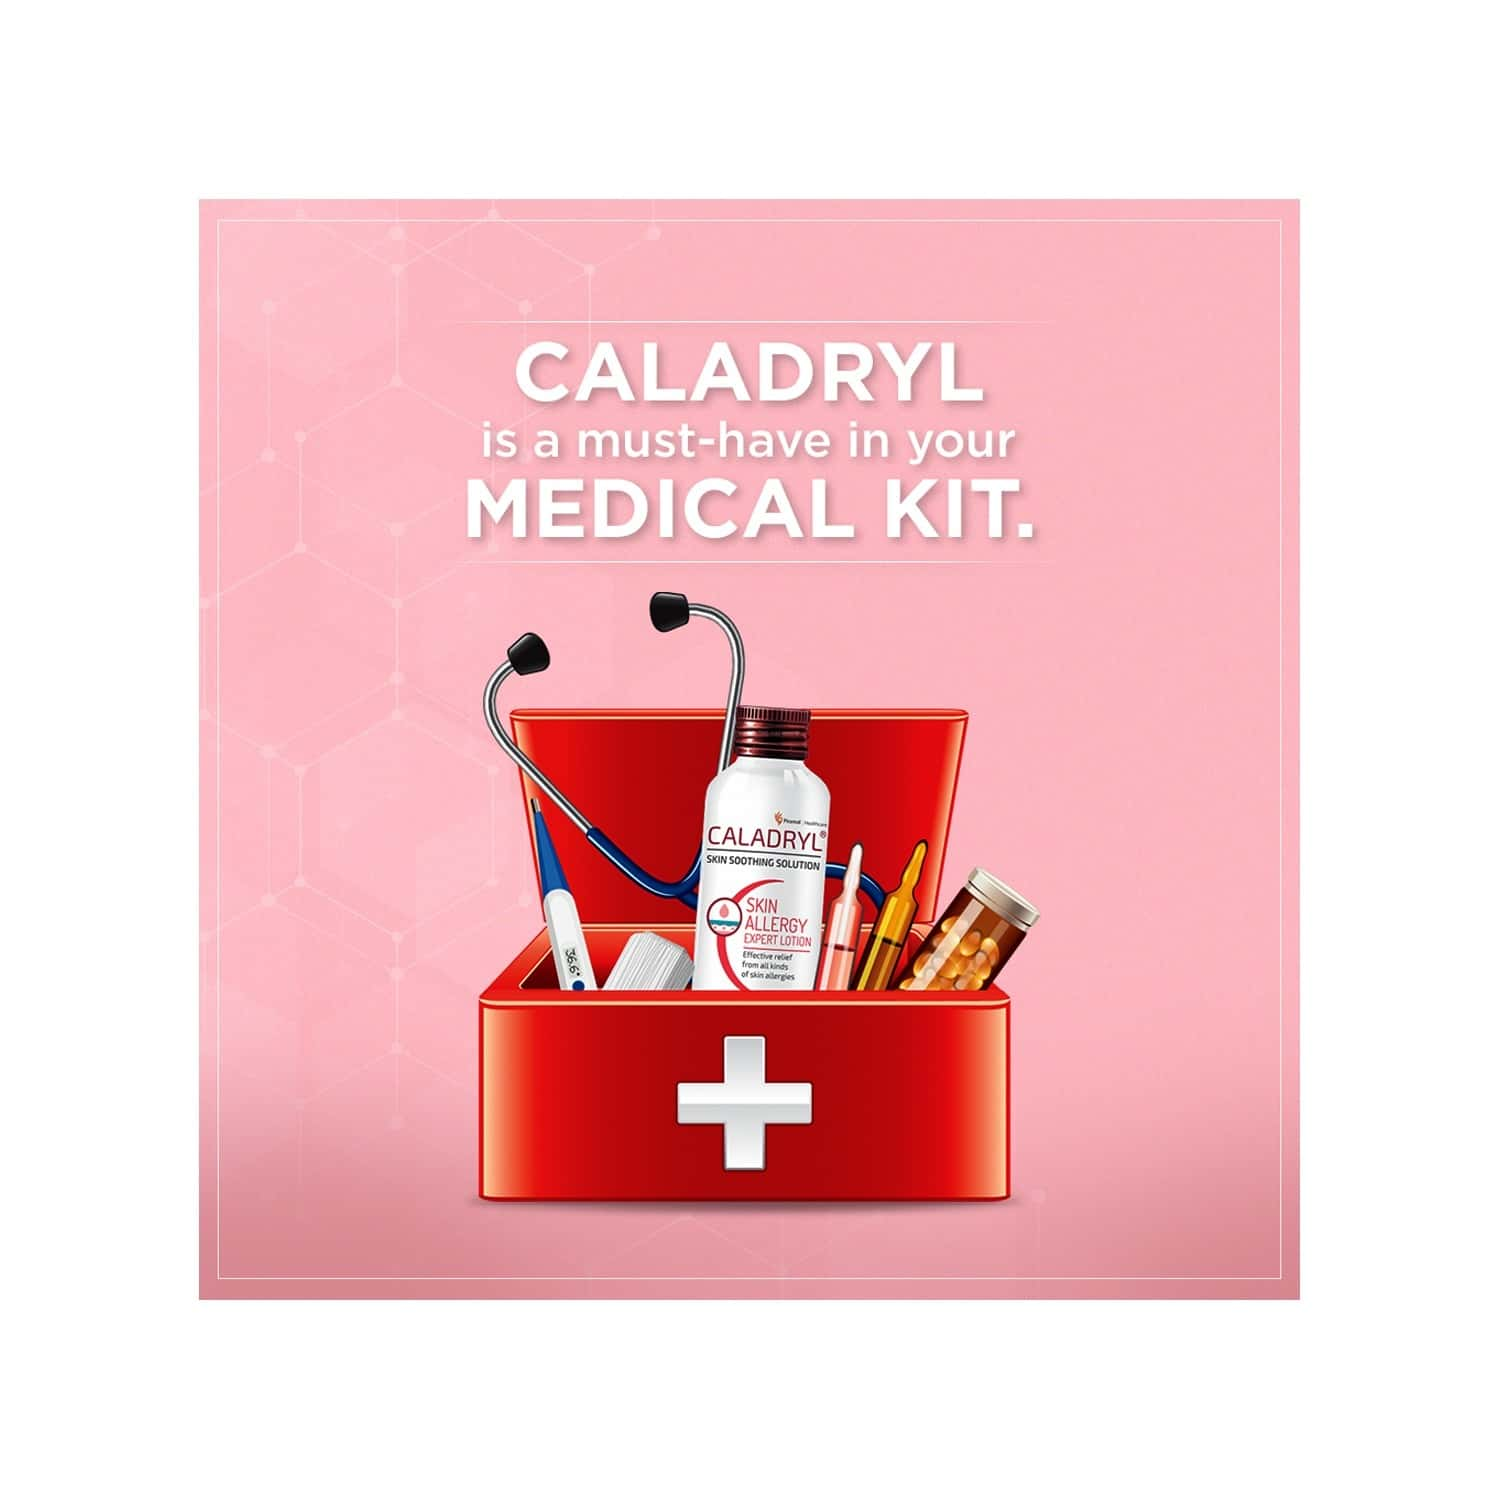 Caladryl Skin Allergy Expert Calamine Lotion - Skin Soothing Solution - 120 Ml